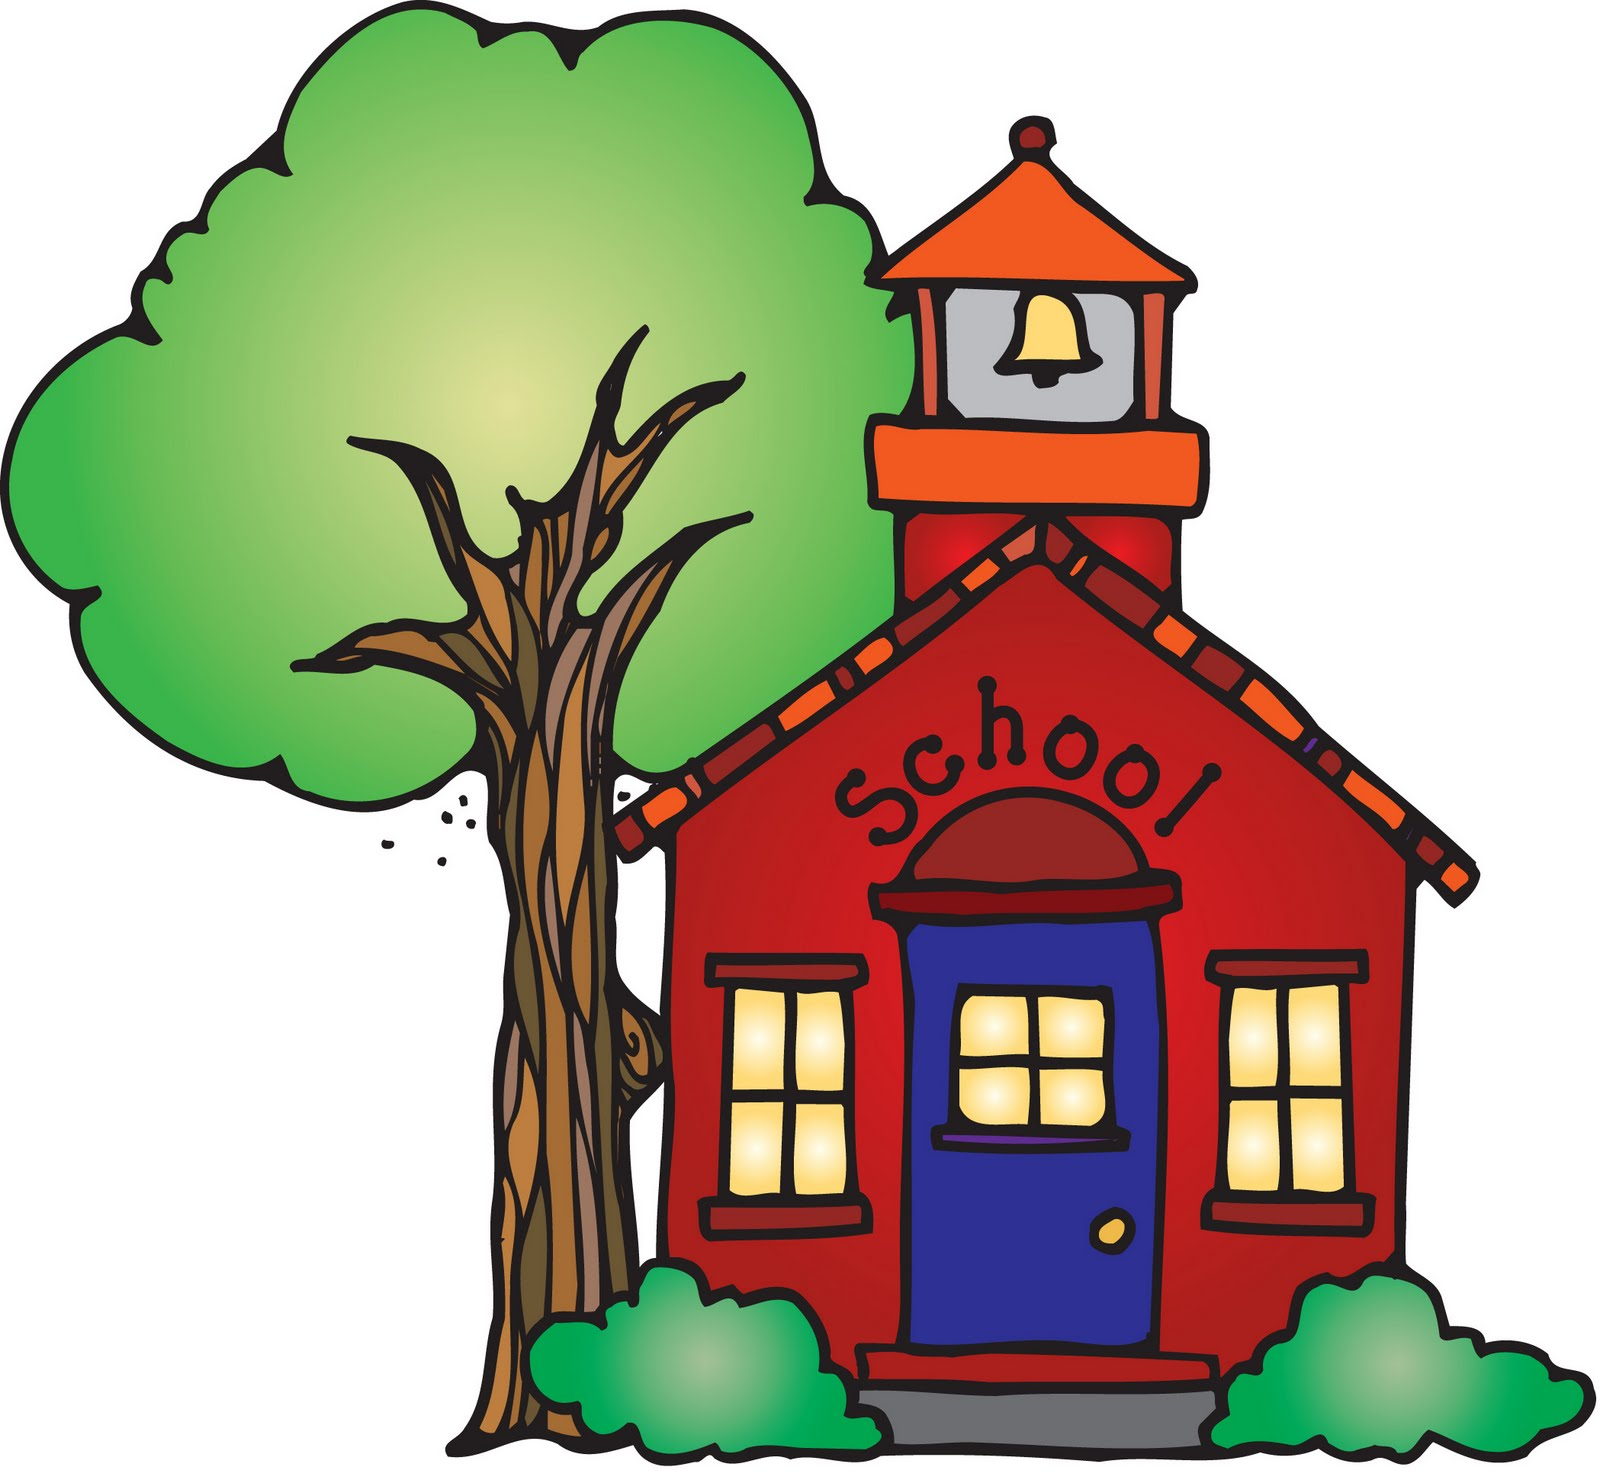 Animated schoolhouse clipart.